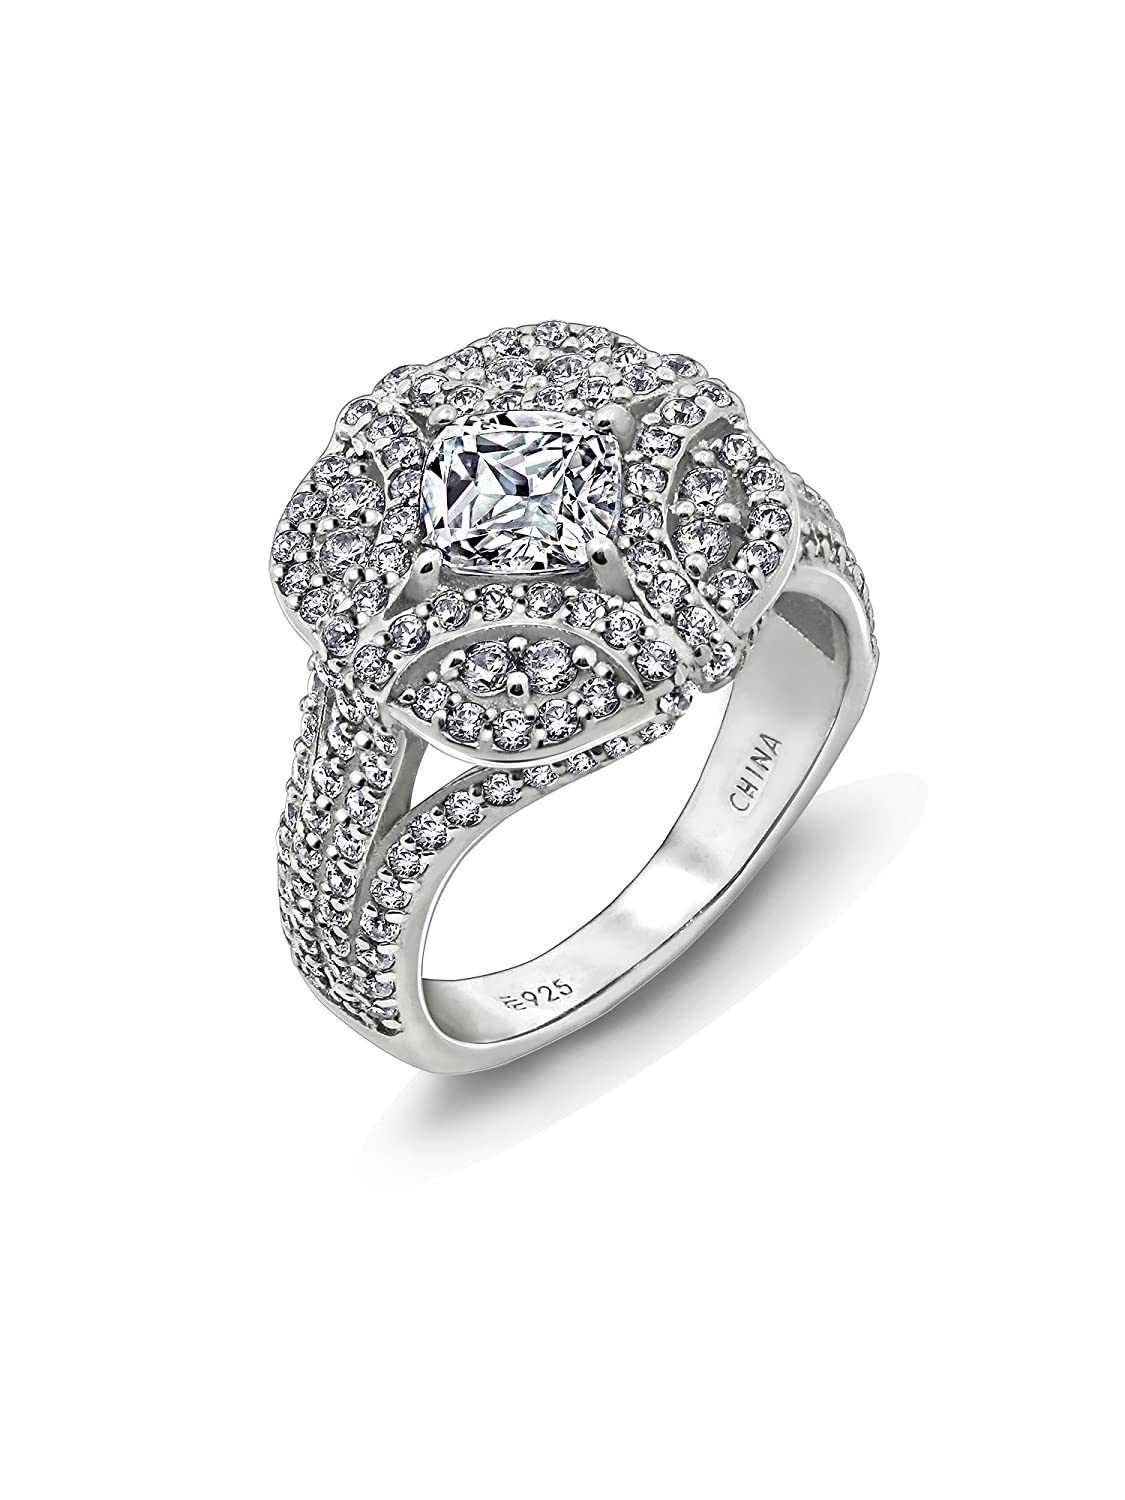 Diamonbliss Platinum Plated Sterling Silver 2.7 ct Cubic Zirconia Fashion Ring